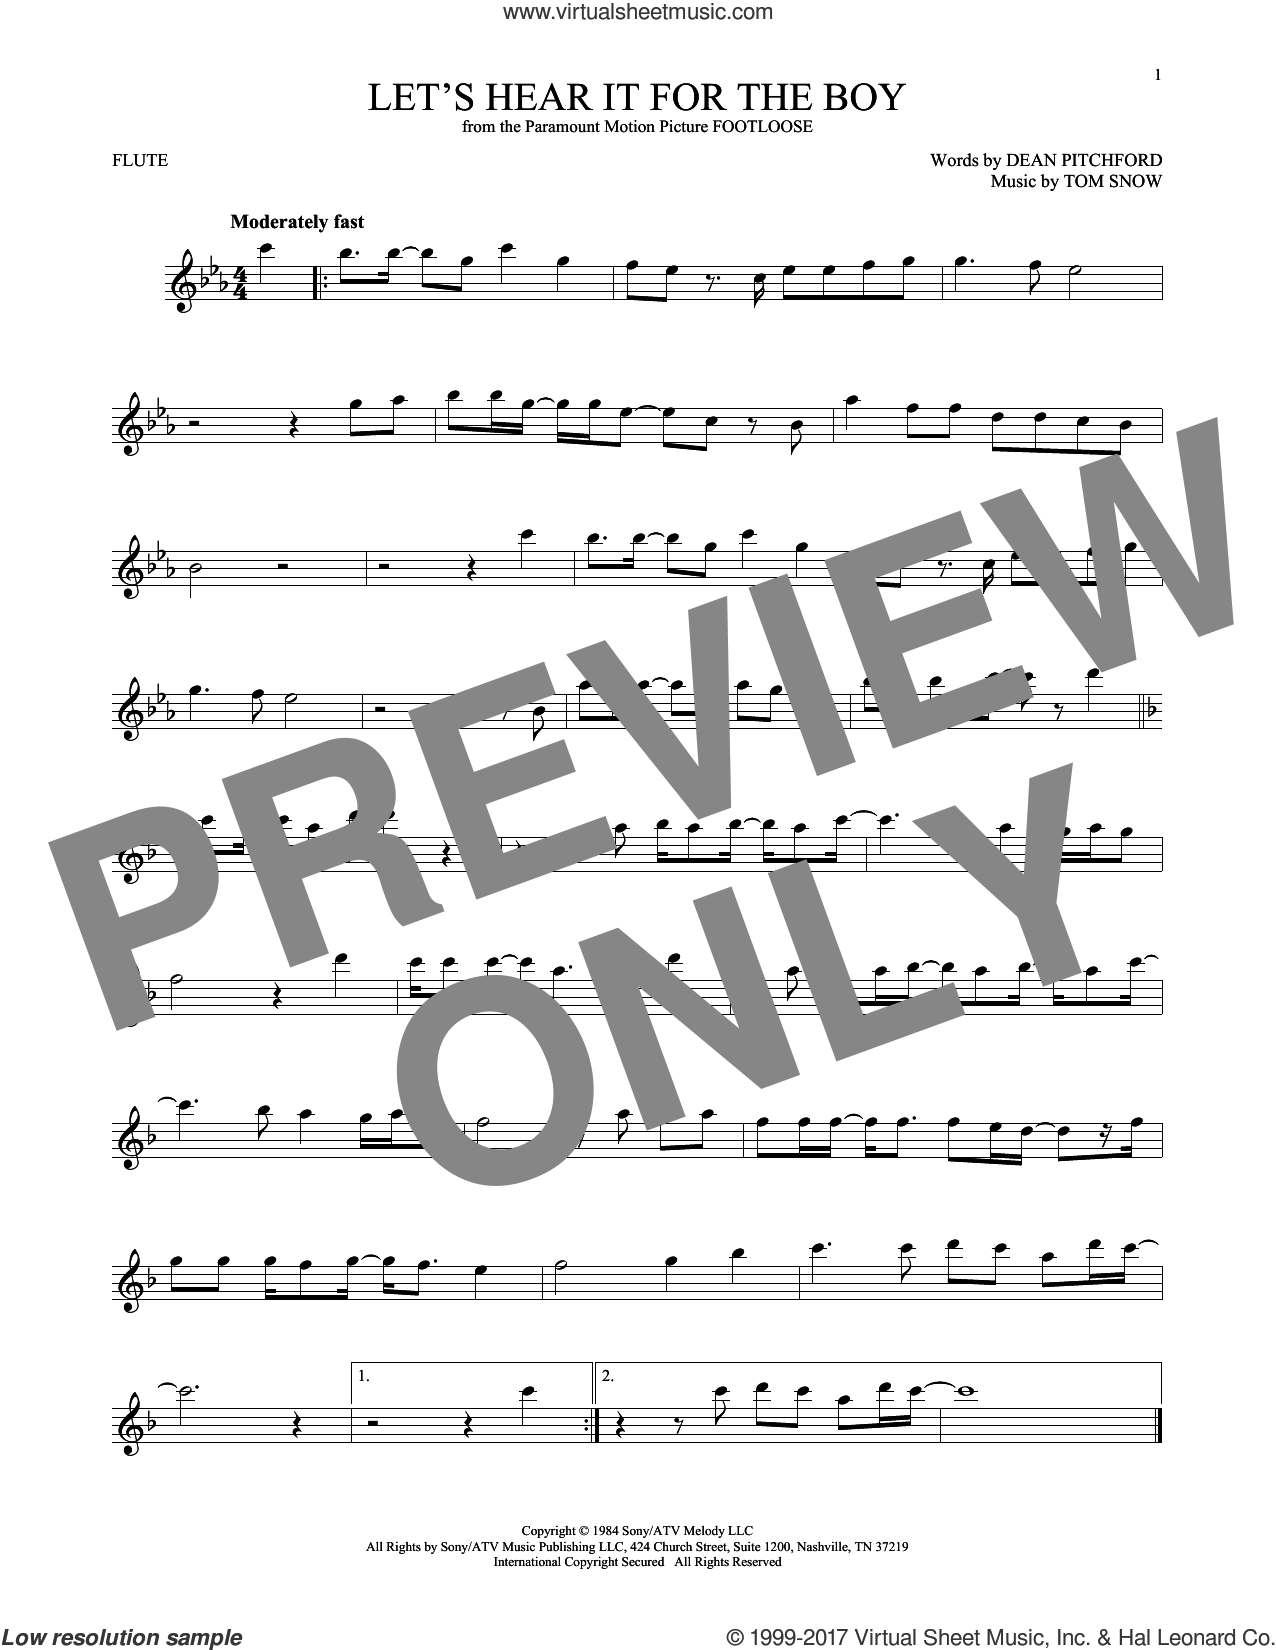 Let's Hear It For The Boy sheet music for flute solo by Deniece Williams, Dean Pitchford and Tom Snow, intermediate flute. Score Image Preview.